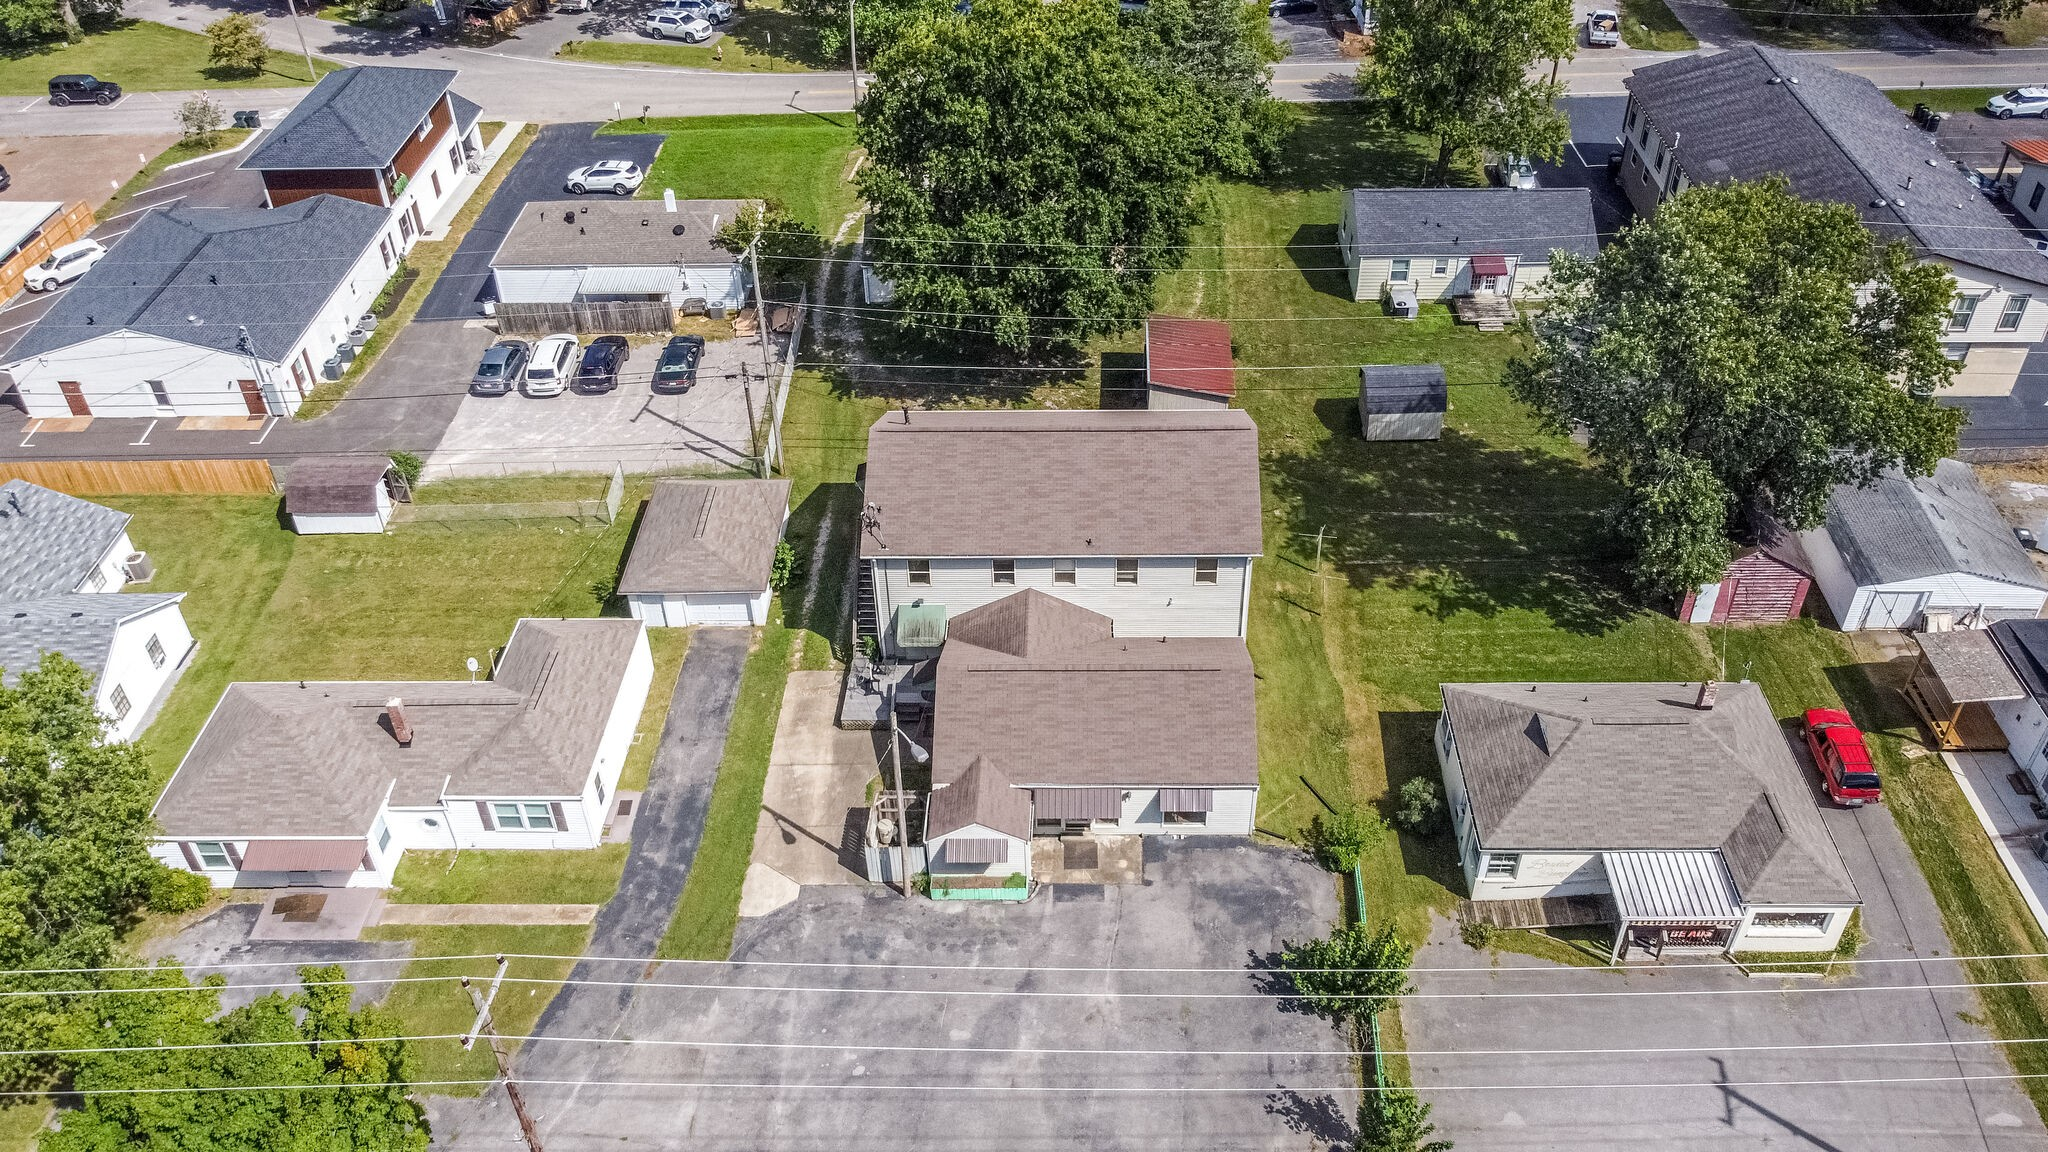 Rare Opportunity in Berry Hill. This property in addition too 2812, 2814 and 2816 Bransford, and 2817 Columbine are being sold. Purchase one, a few, or all property's for this sought after area in Nashville. Sold as is Where Is. Buyer and Buyers Agent must verify all pertinent information.